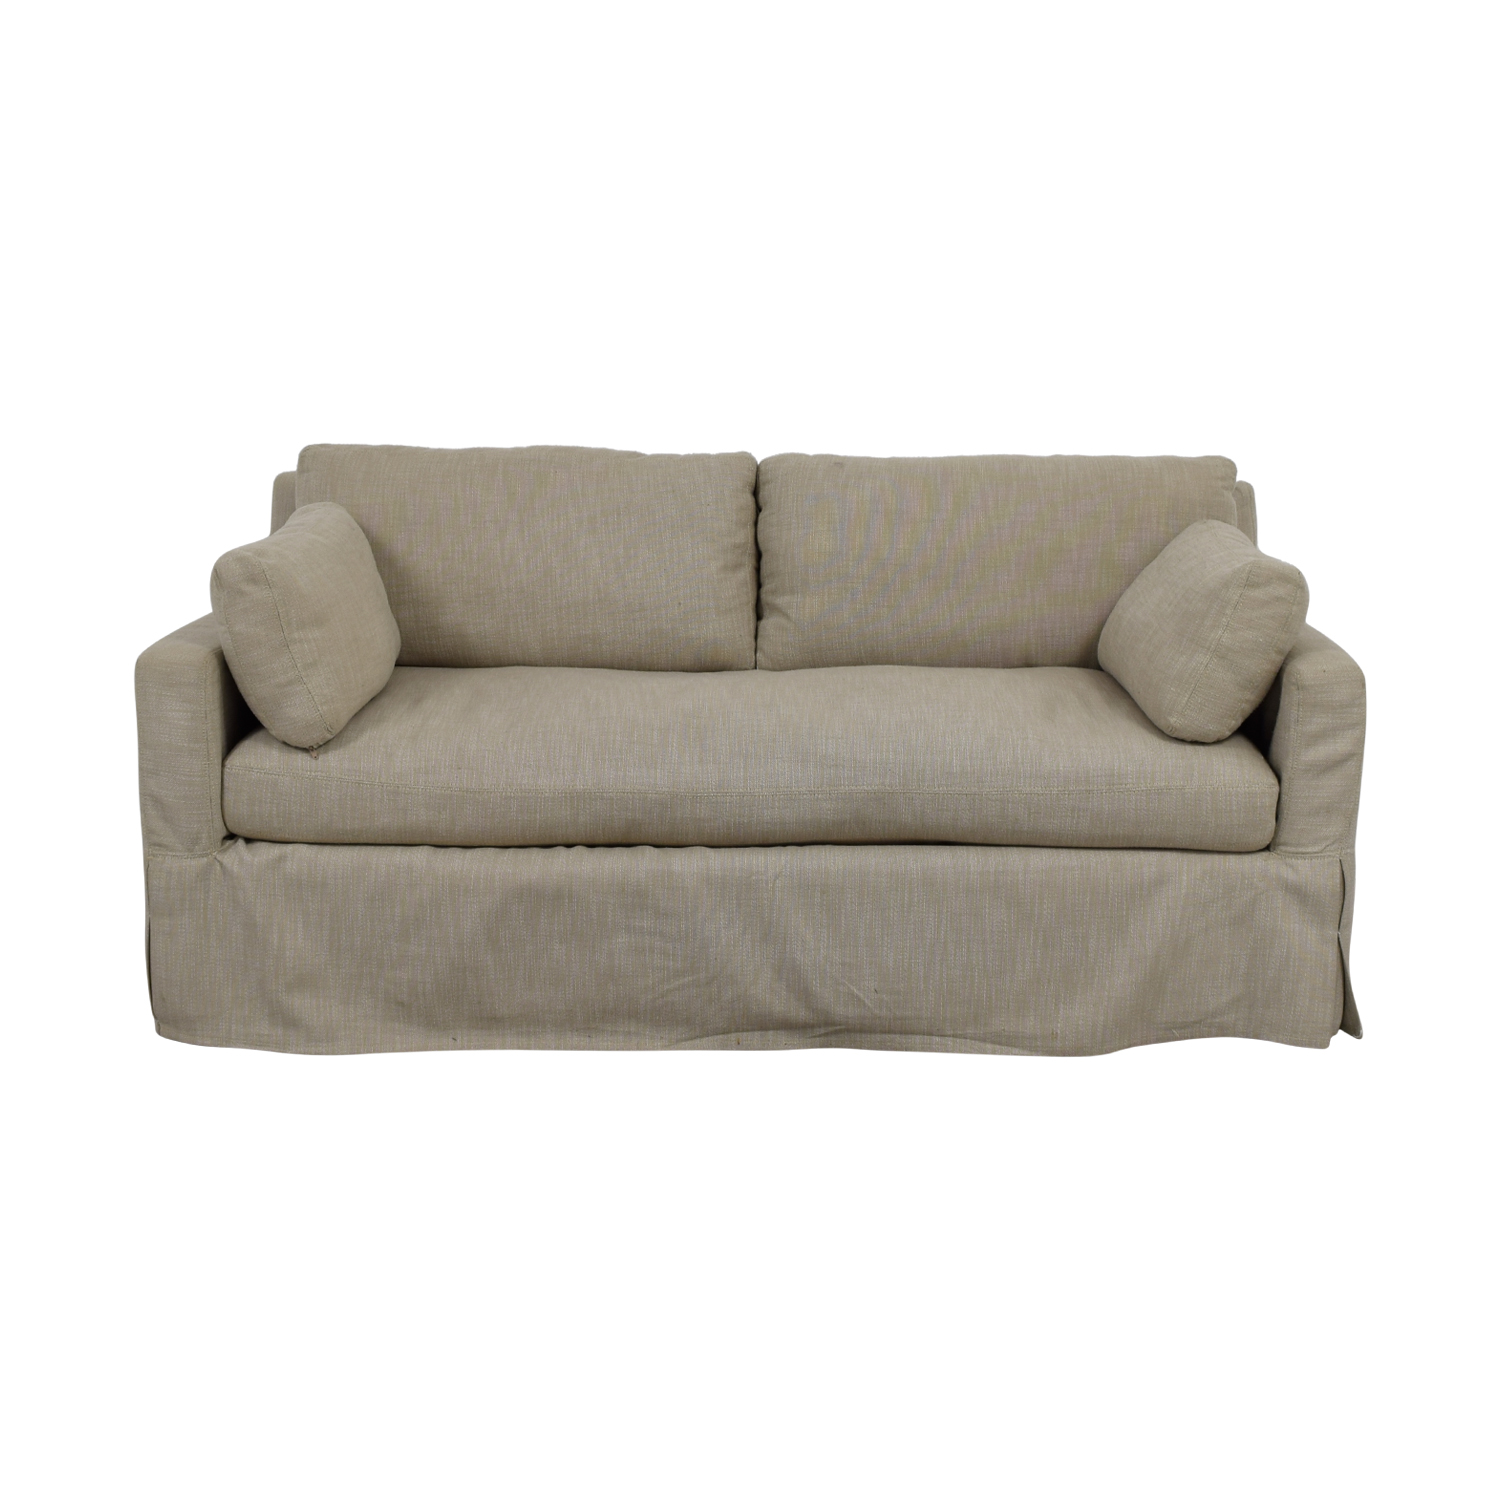 Restoration Hardware Belgian Beige Track Arm Slipcovered Sofa / Loveseats